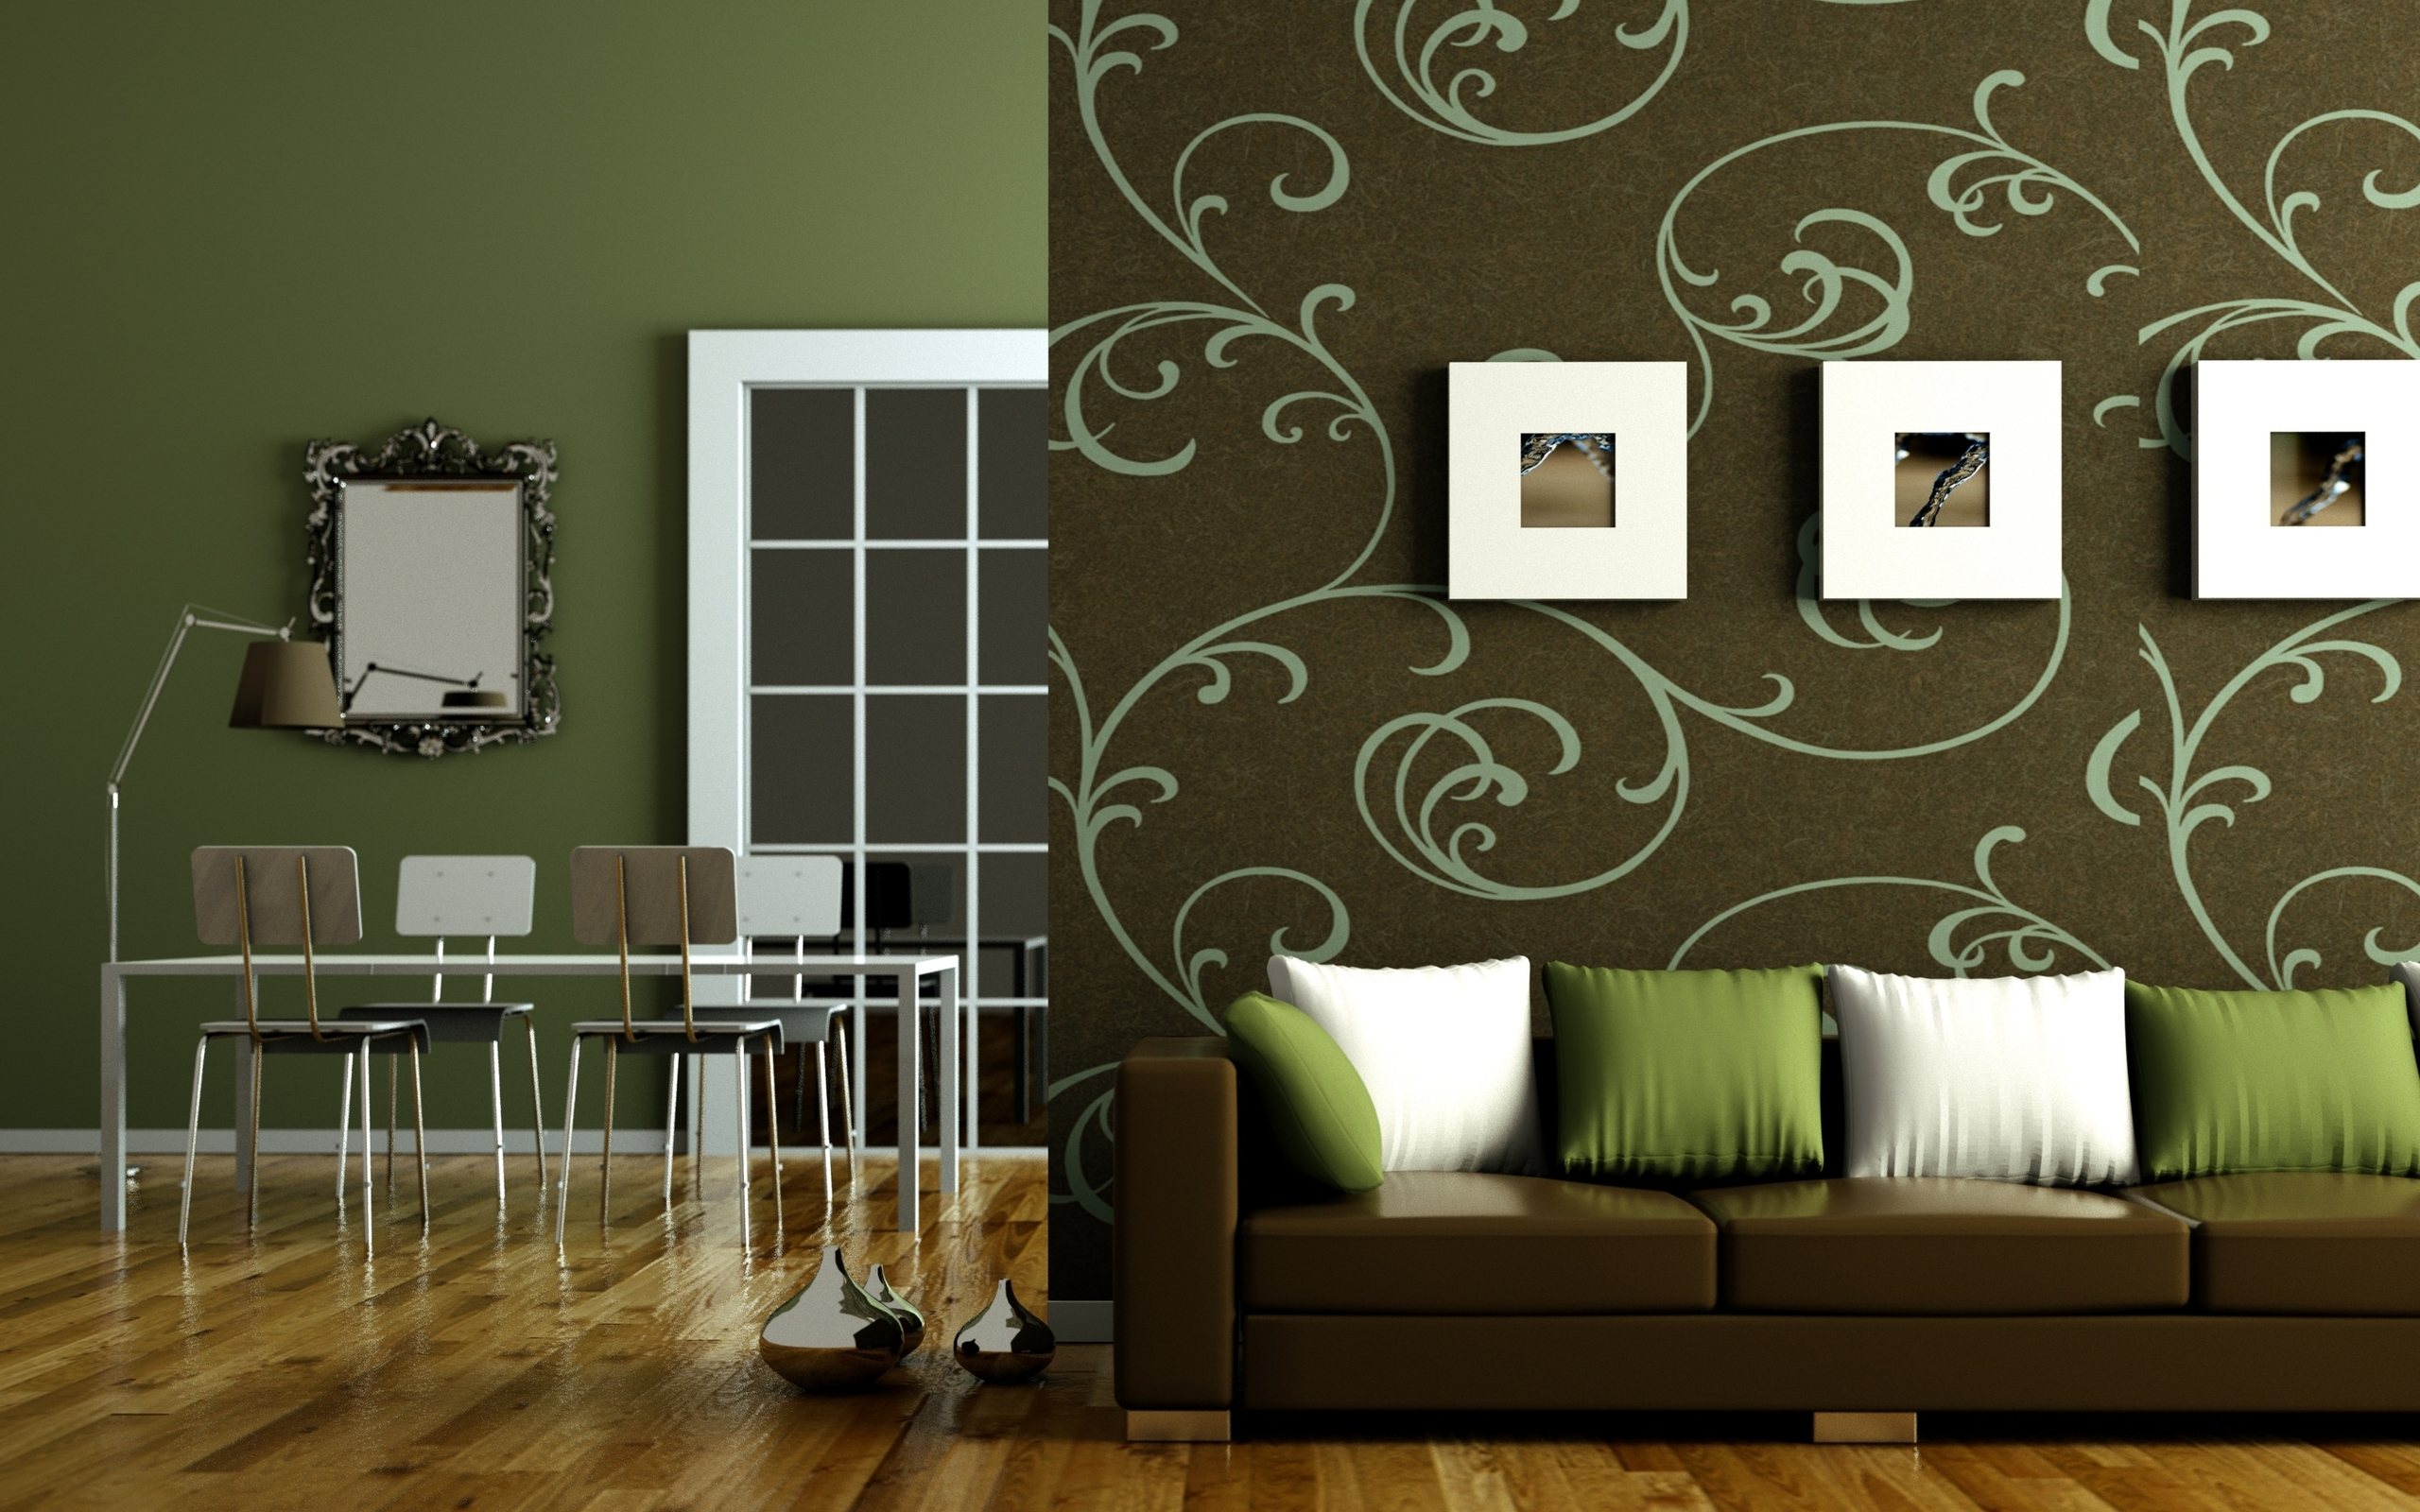 Flat interior design wallpapers 2560x1600 2111877 for Green and brown living room walls